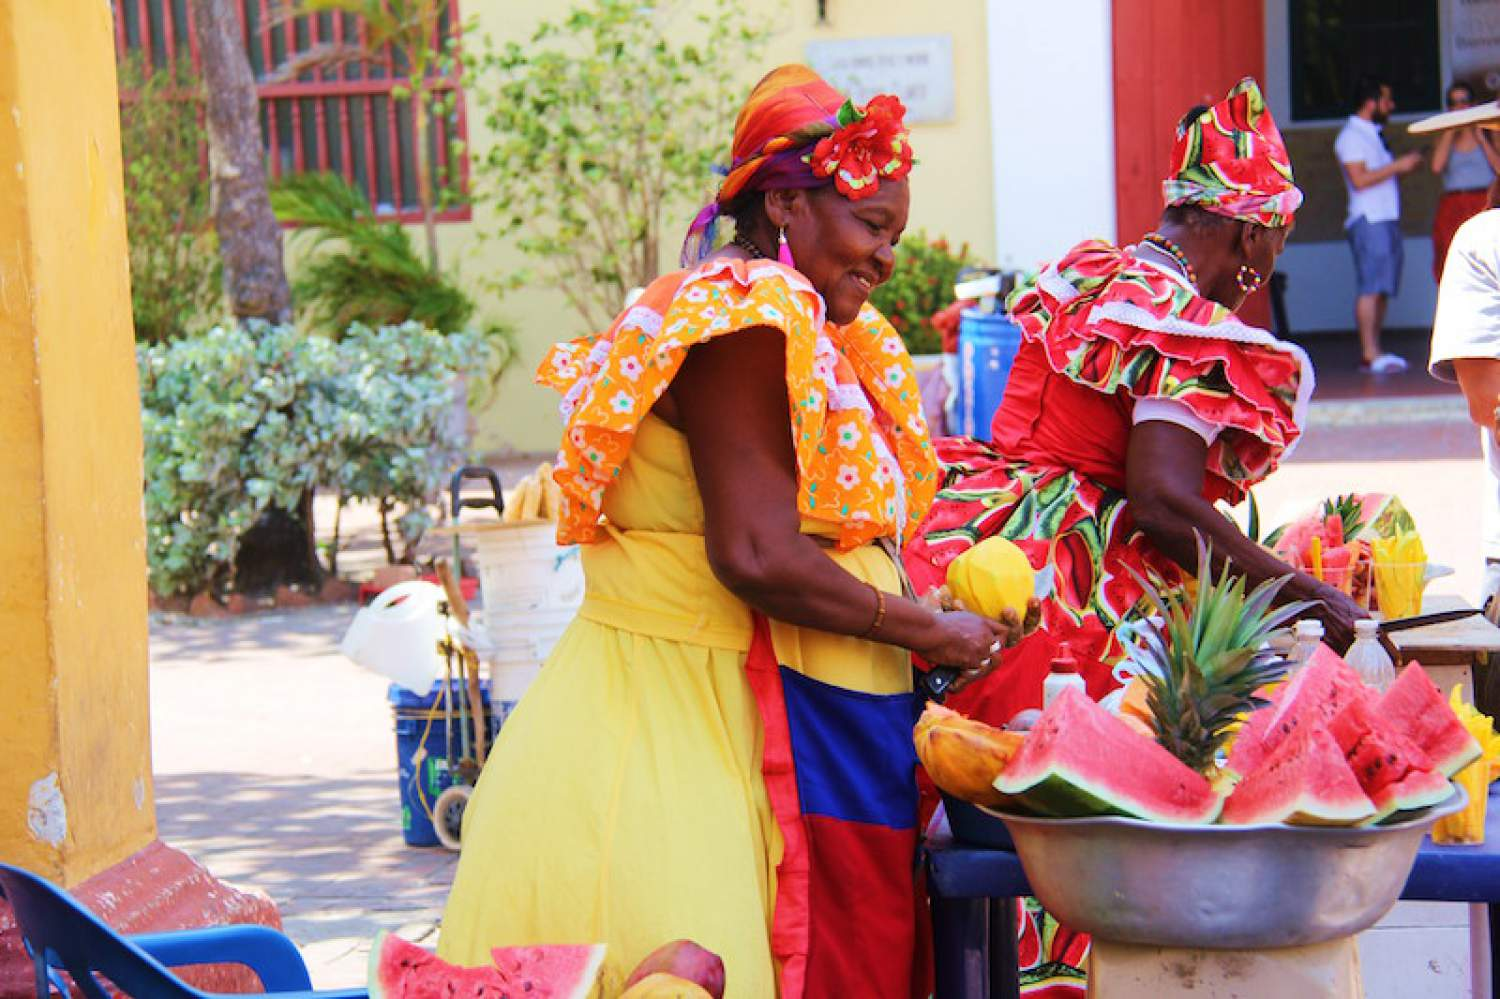 Fruit stand in Cartagena, Colombia